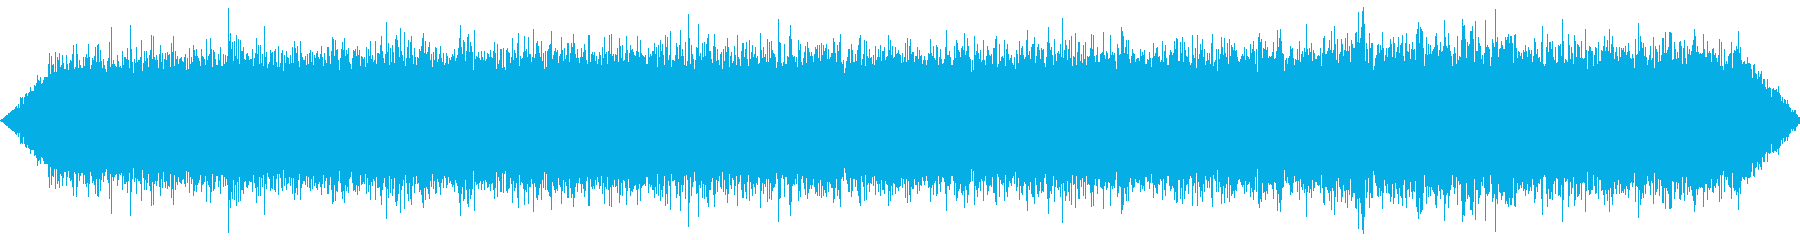 The sound of a large waterway waterfall's reproduced waveform